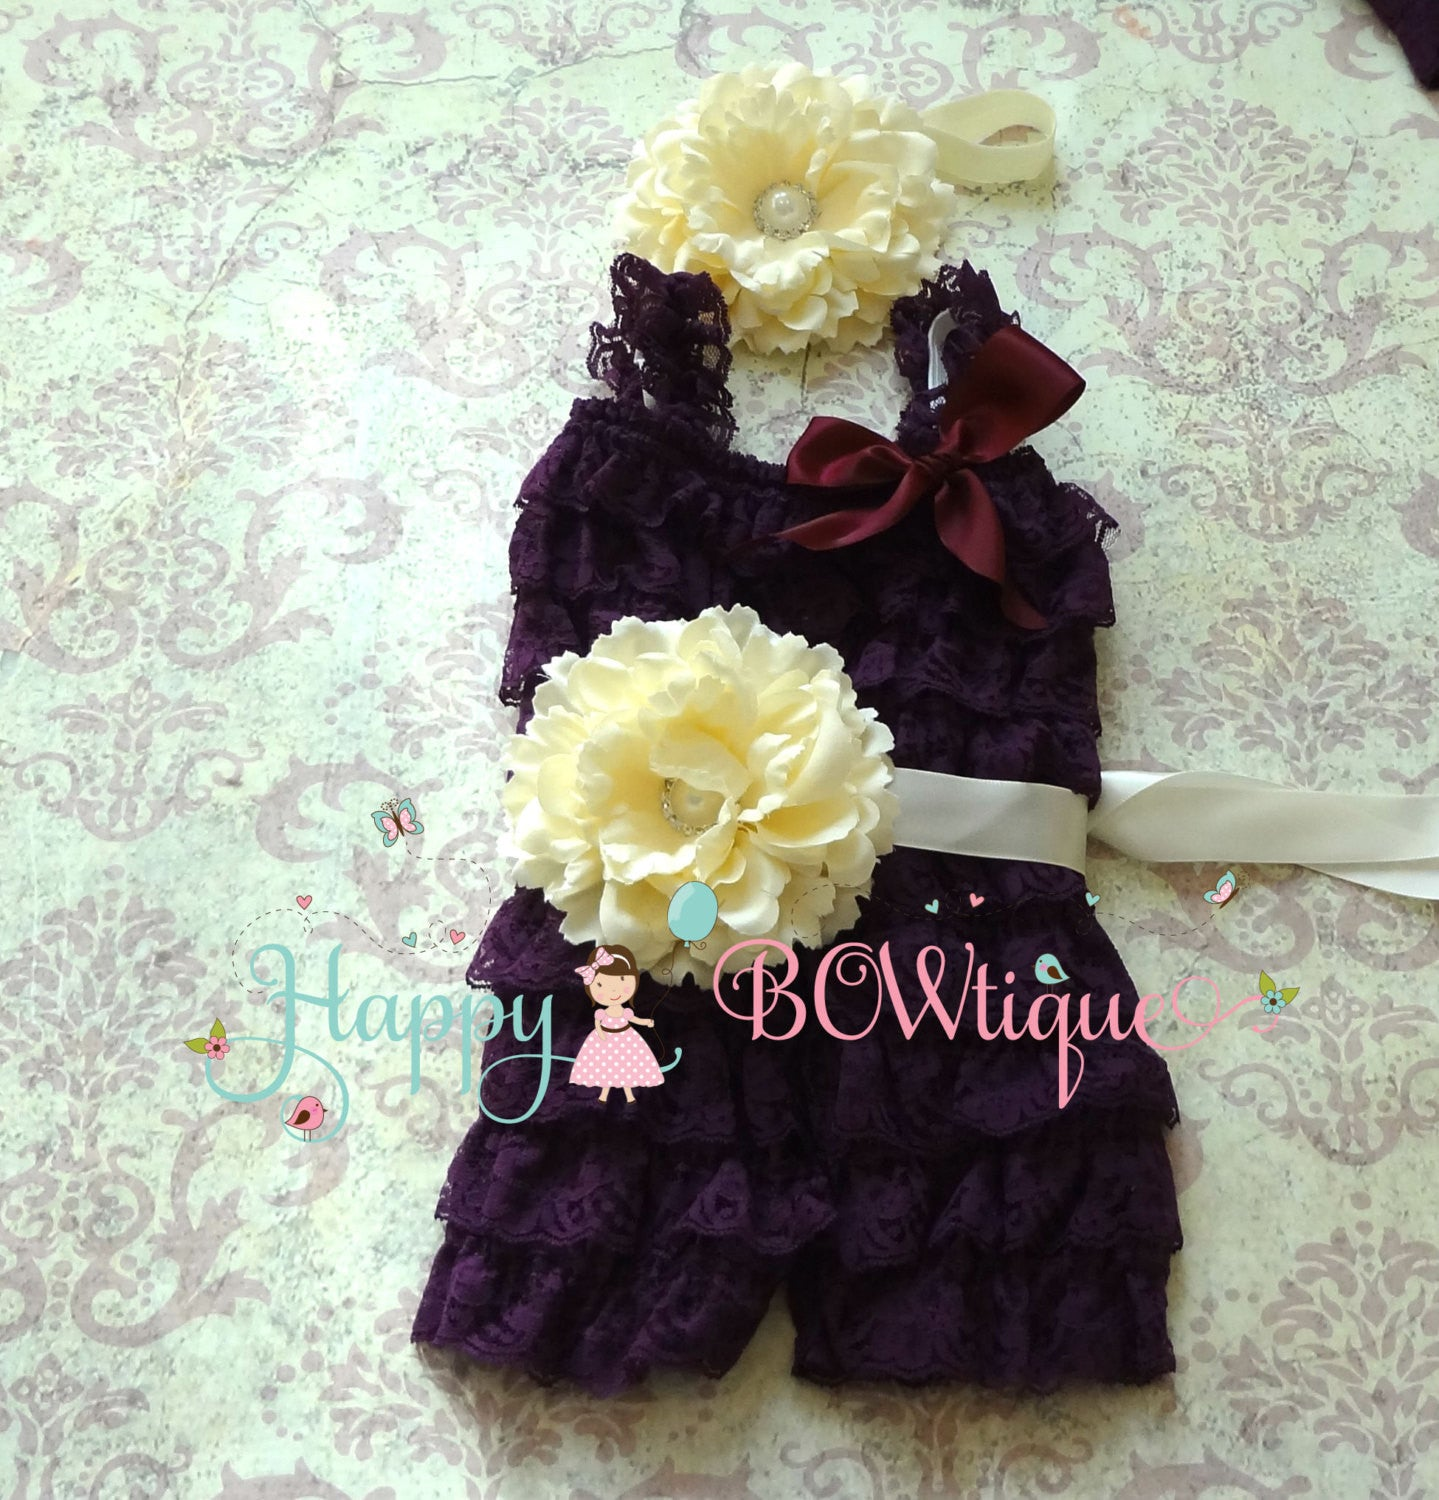 Purple Ivory Plum Flower lace Romper set - Happy BOWtique - children's clothing, Baby Girl clothing